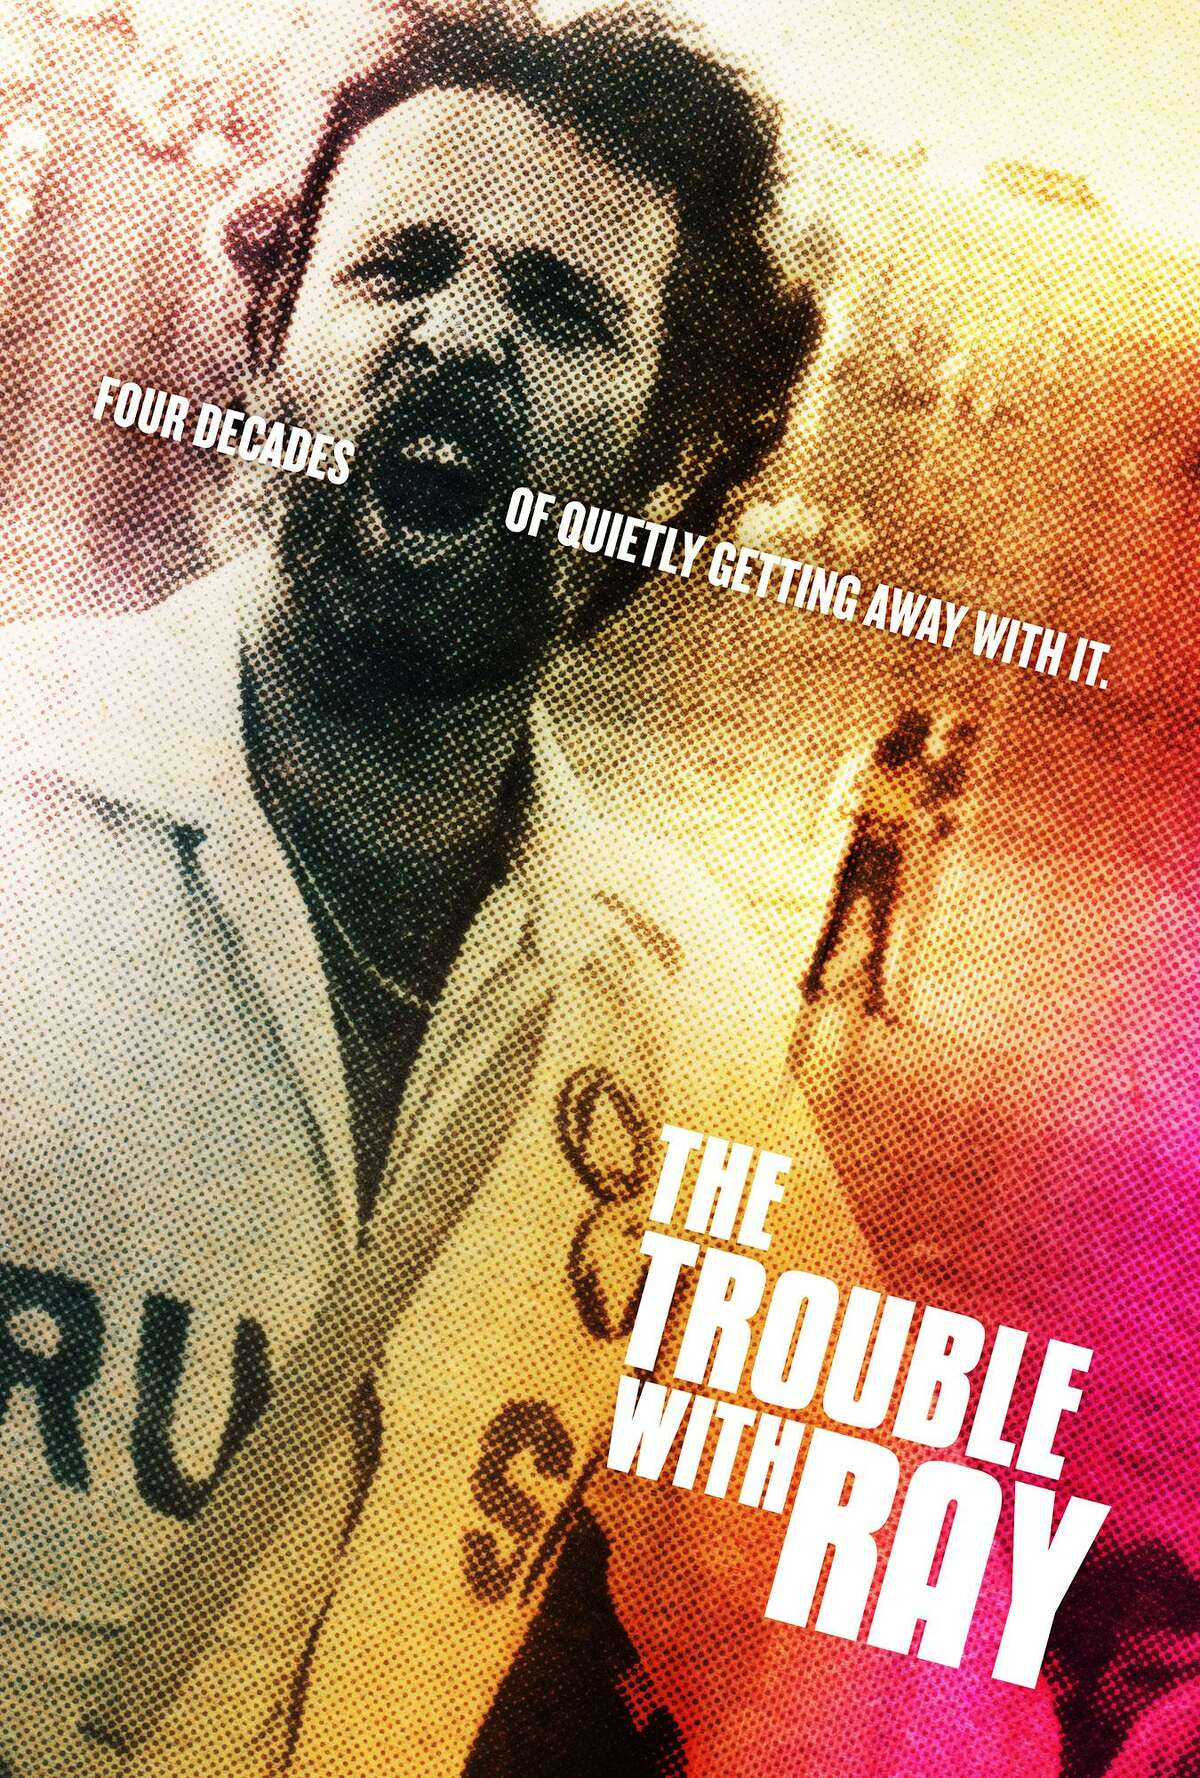 """Poster for """"The Trouble With Ray,"""" a documentary focusing on Houston activist Ray Hill."""